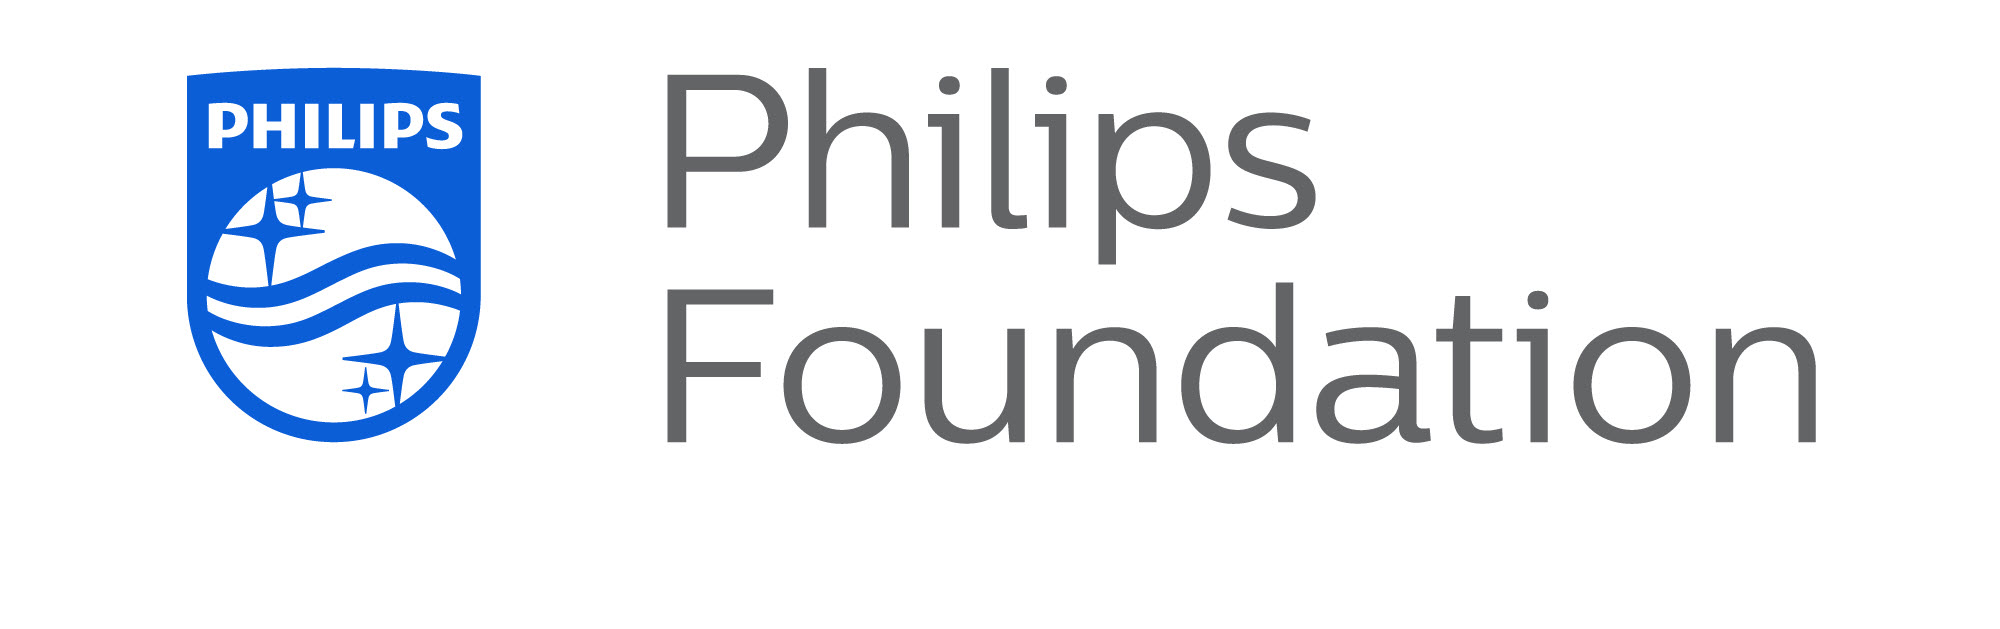 Philips Foundation icon